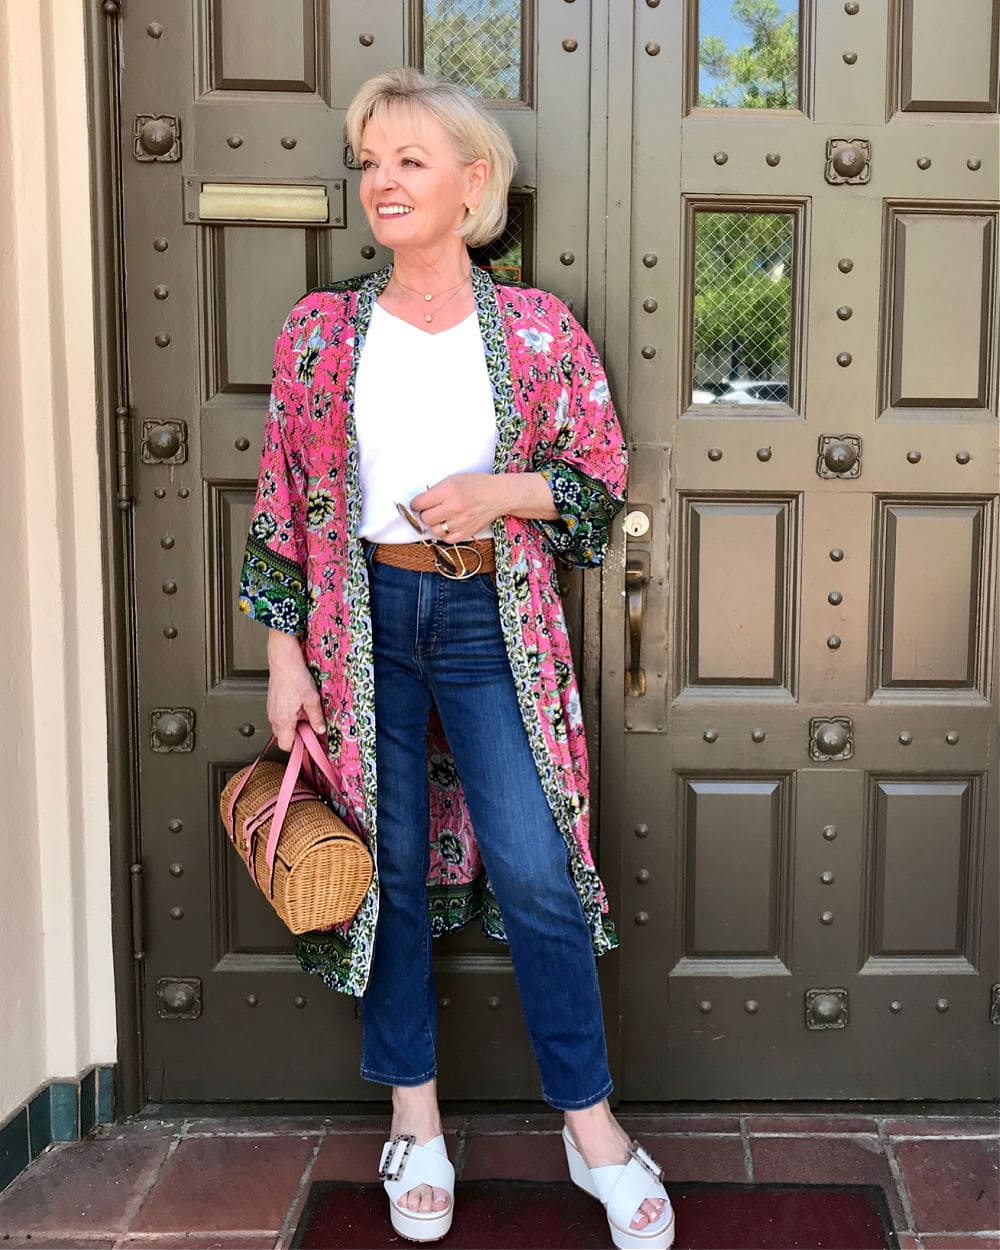 woman standing in front of green door wearing floral kimono and blue jeans